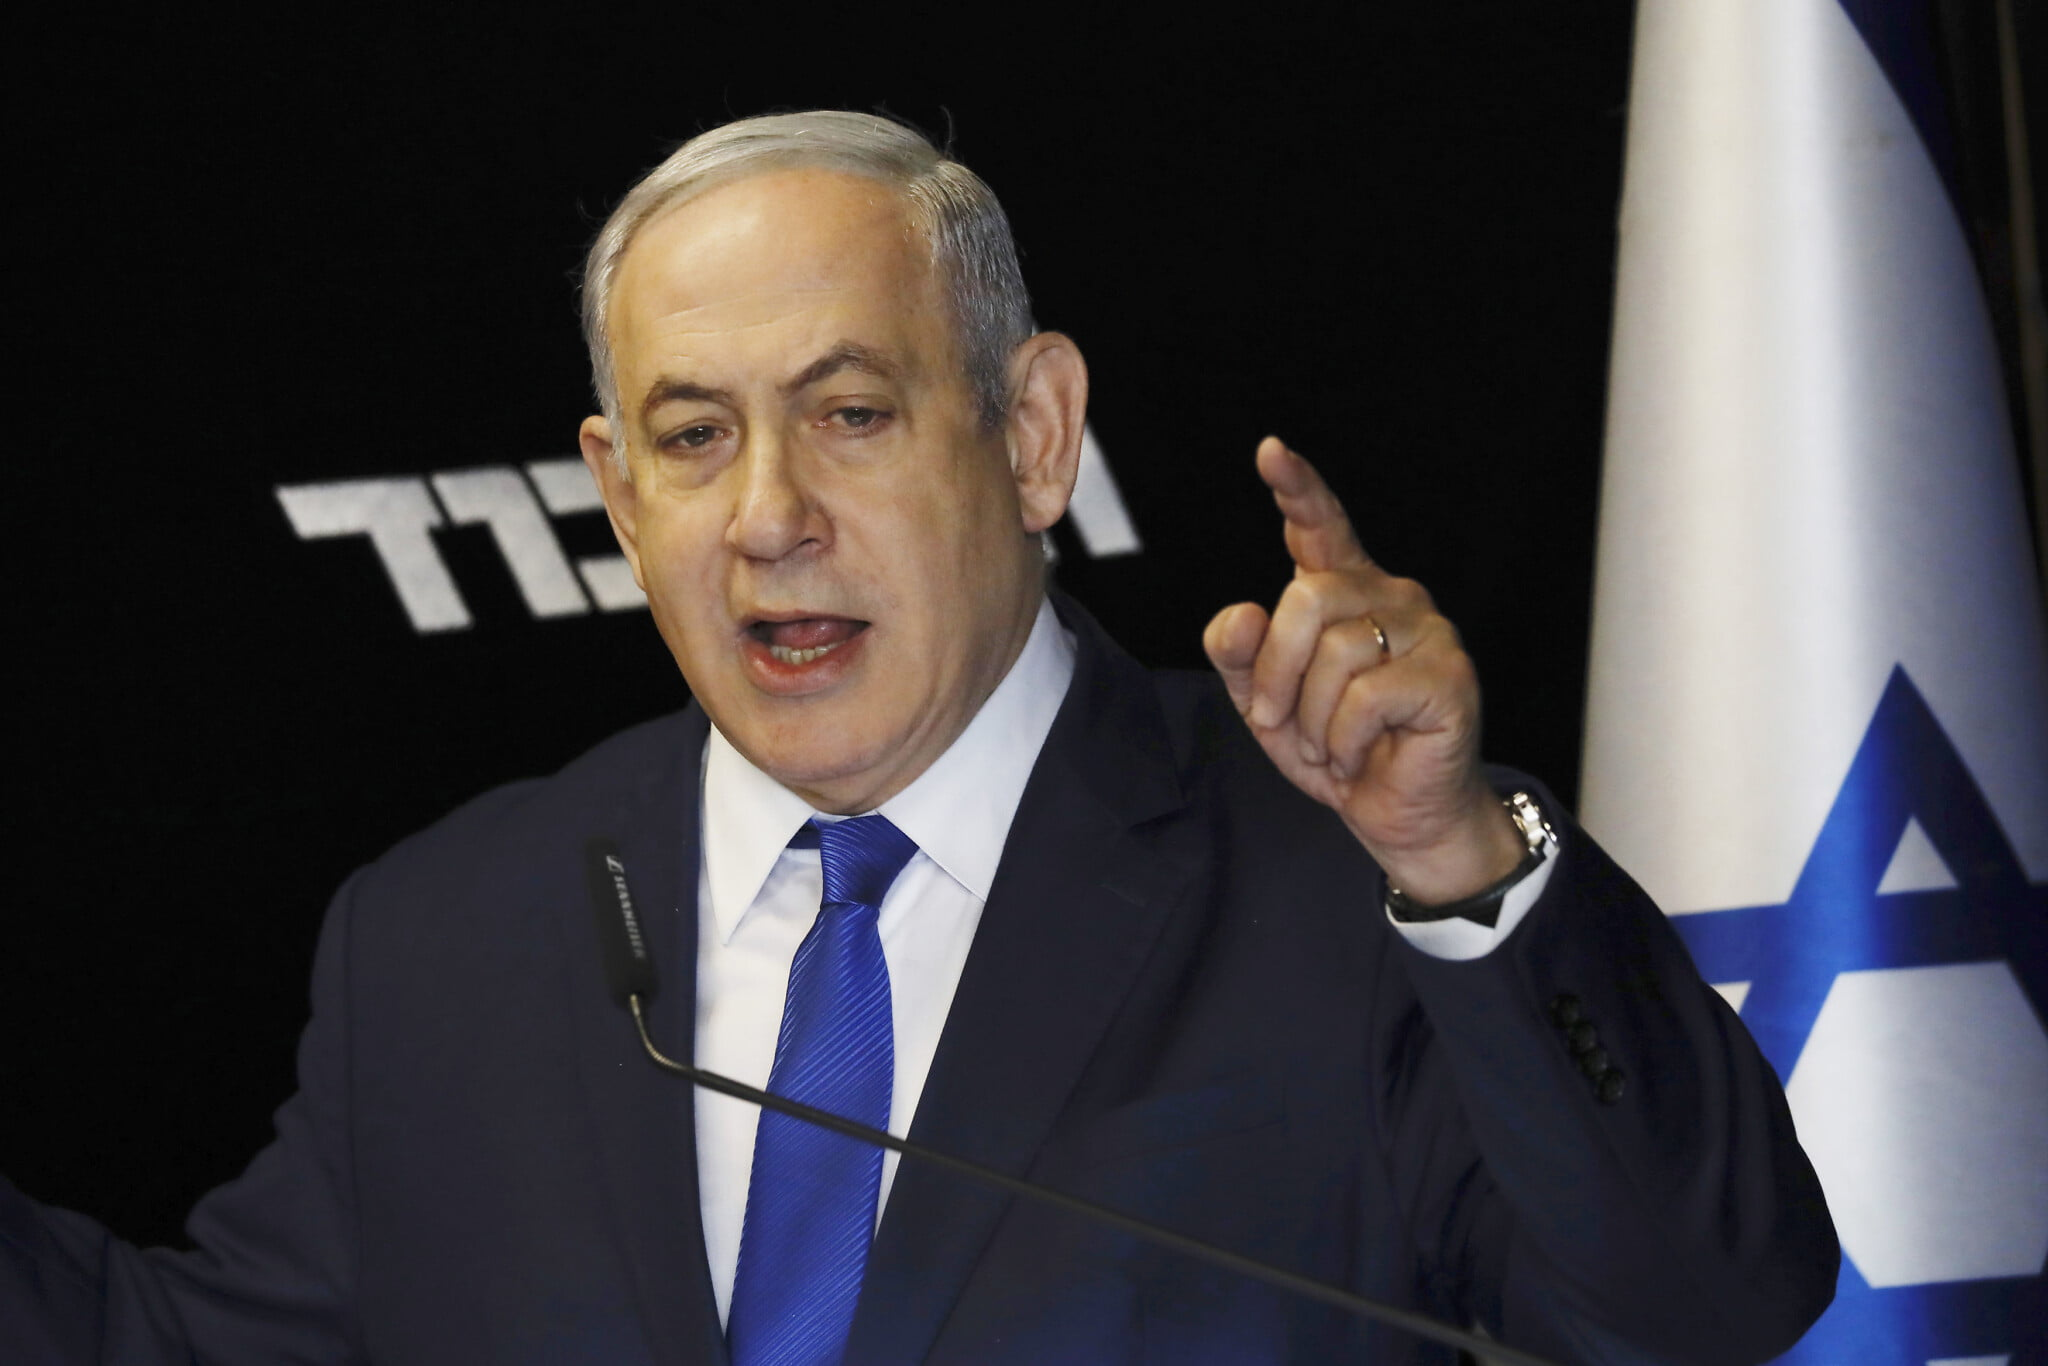 Netanyahu wins comfortably in the primaries of his party